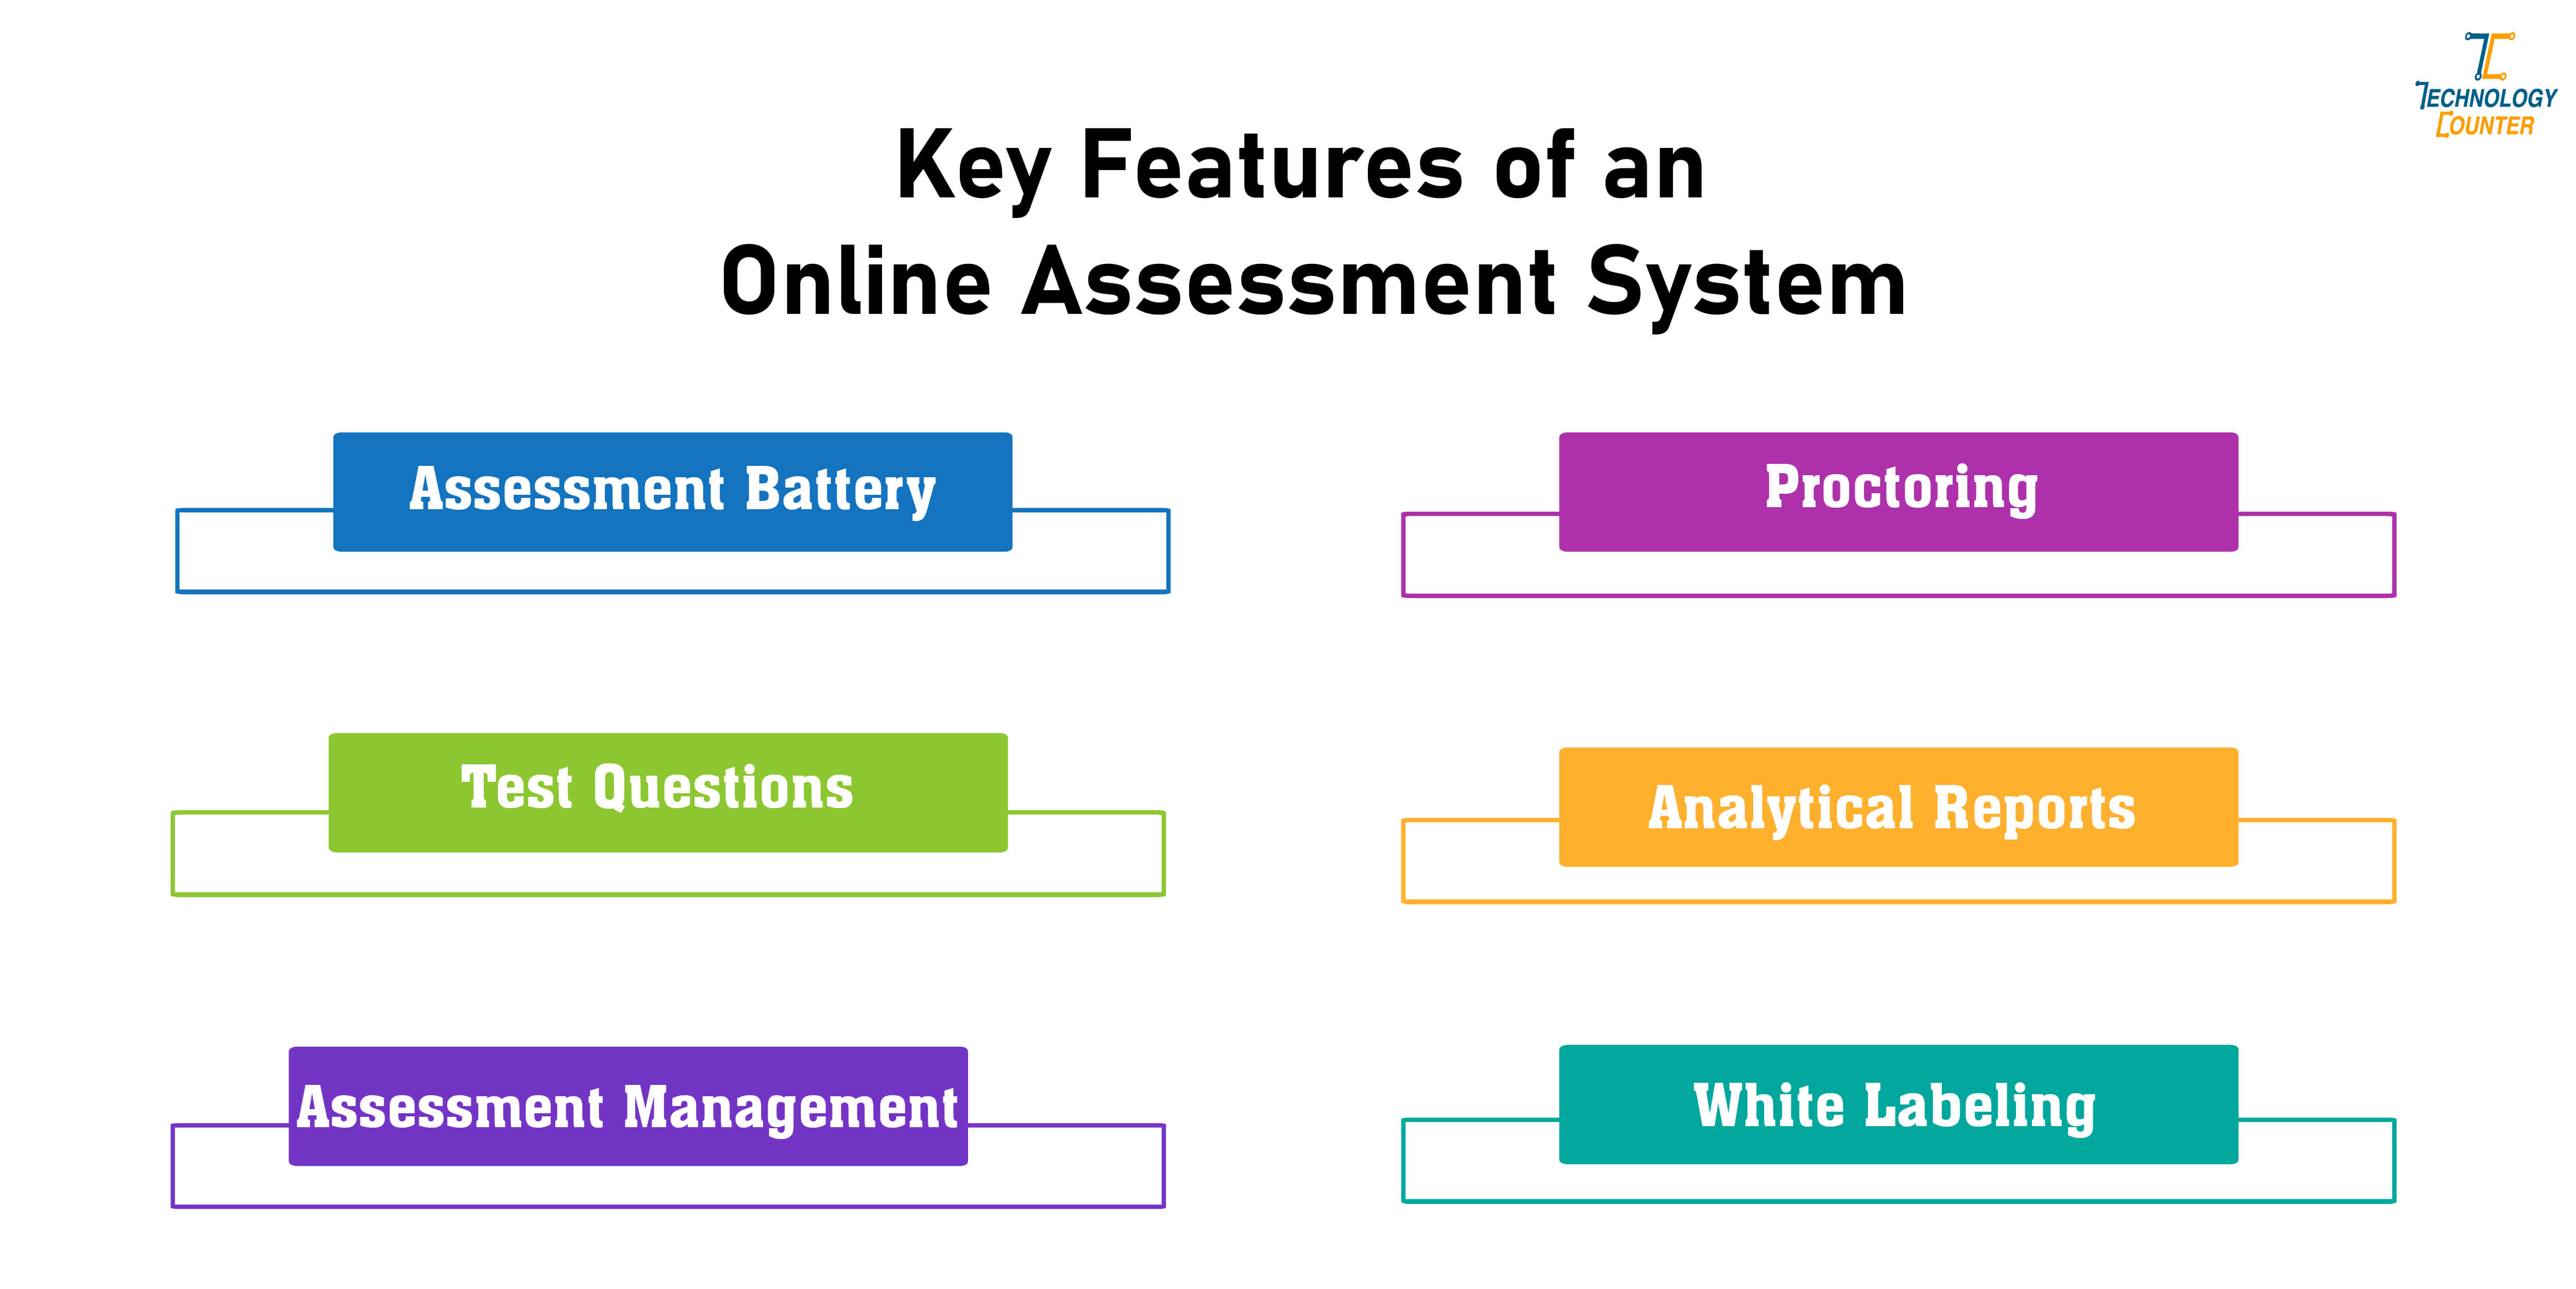 Key Features of an Online Assessment System